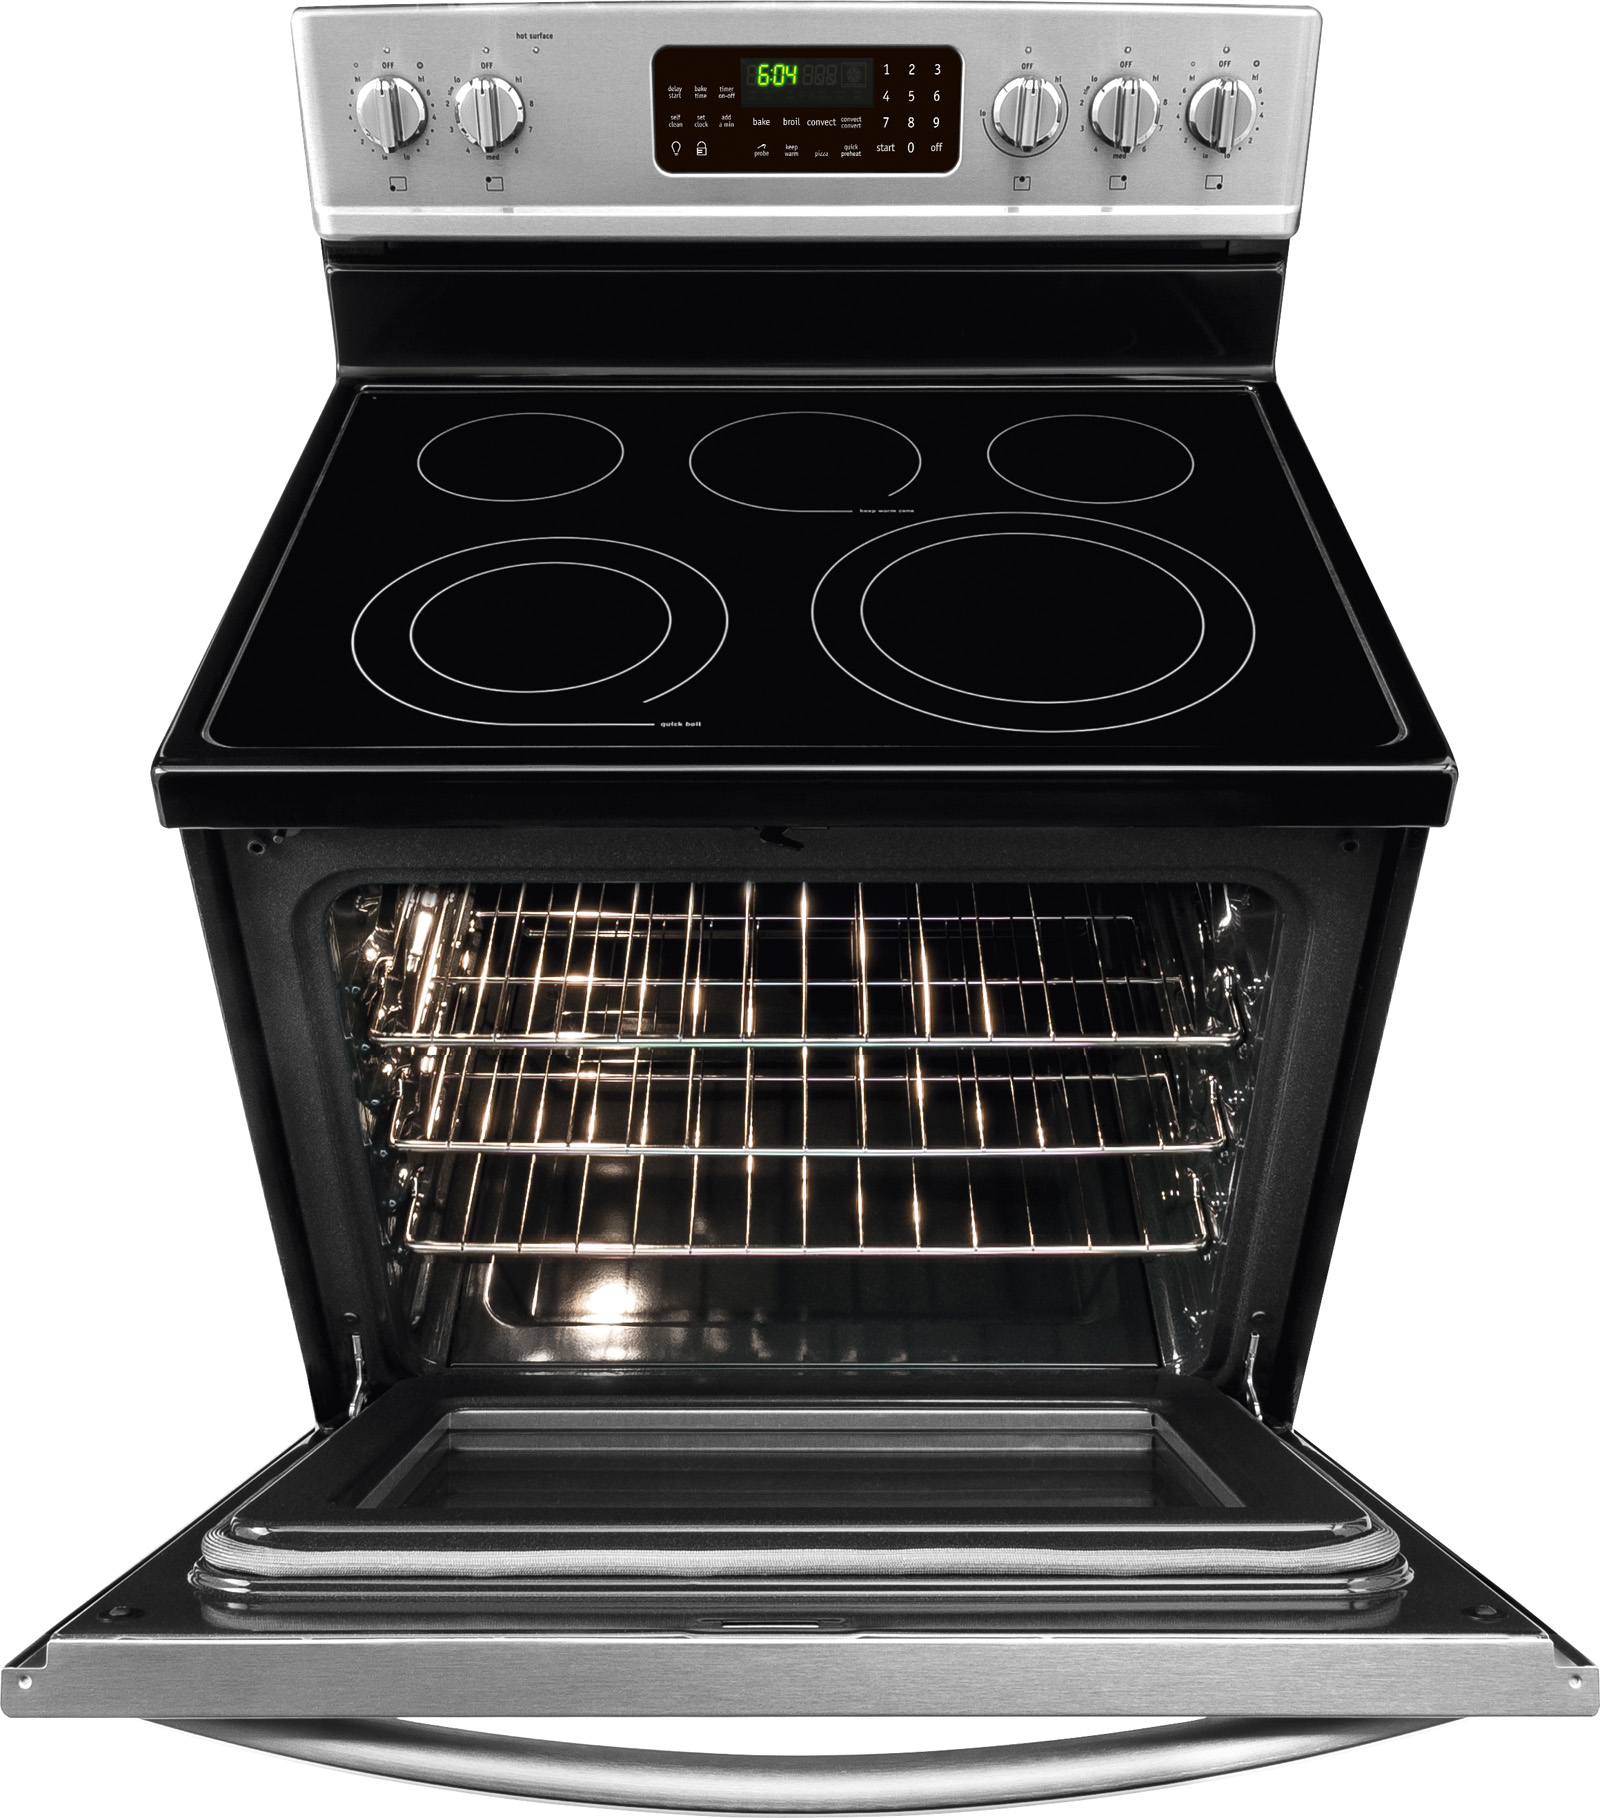 Frigidaire Gallery FGEF3058RF 5.8 cu. ft Electric Range - Stainless Steel